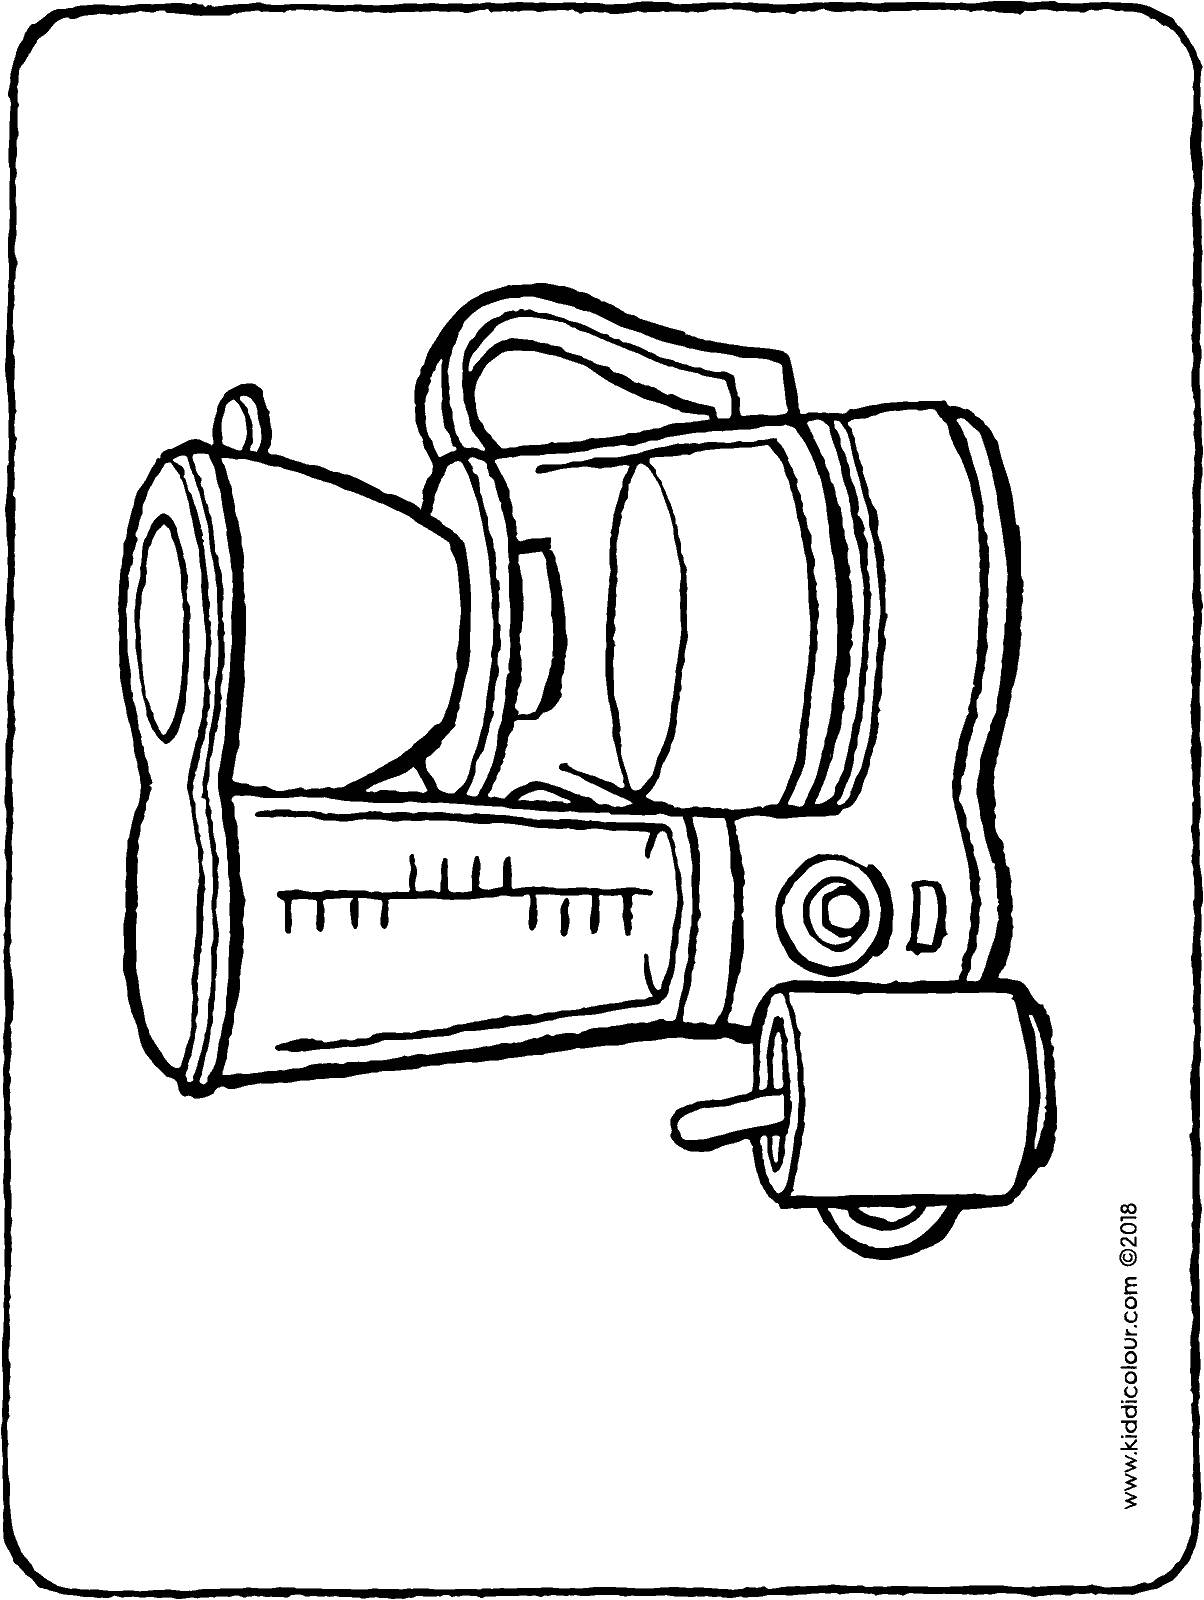 coffee machine colouring page drawing picture 01H